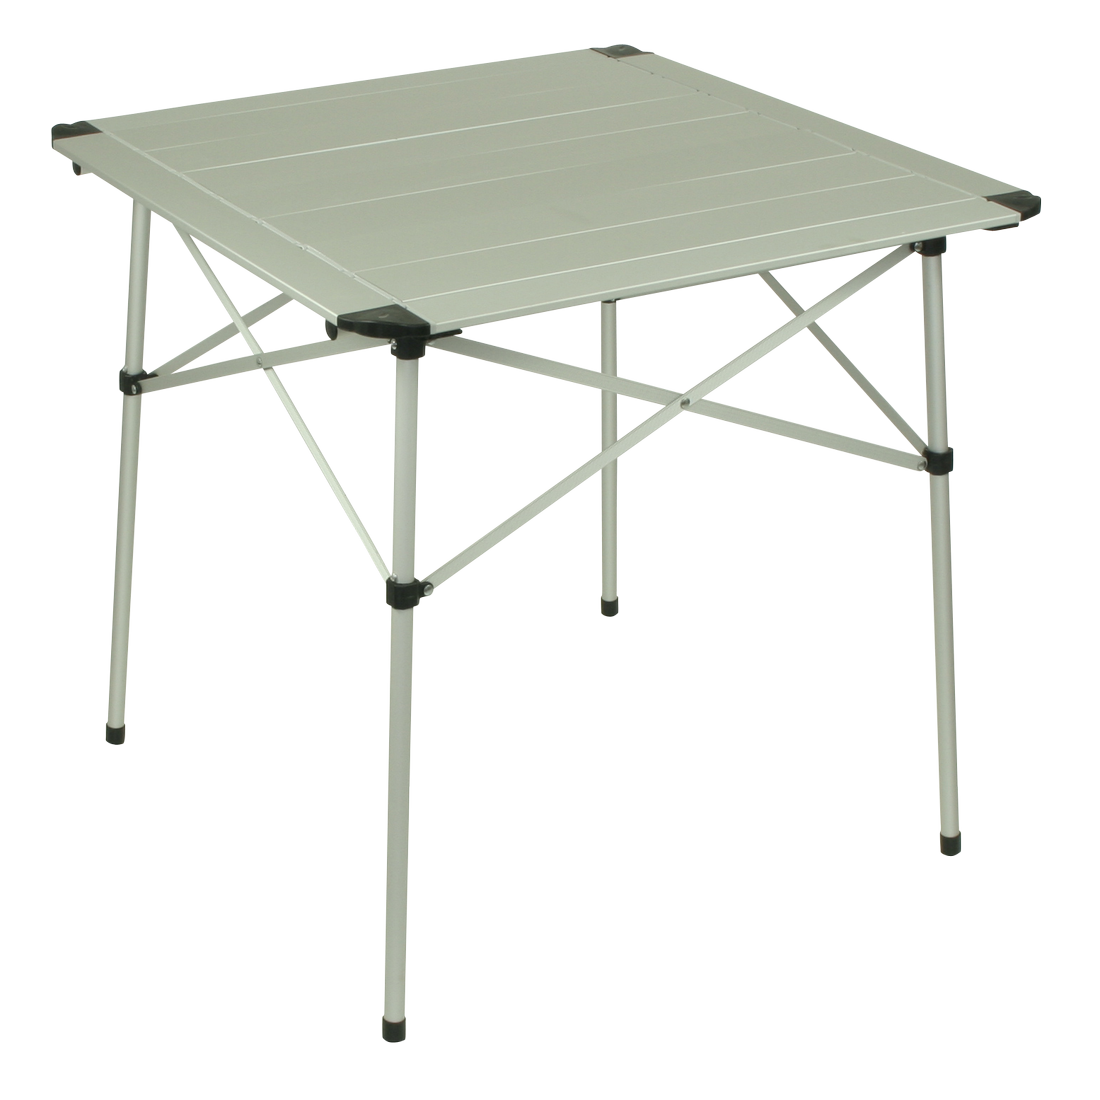 10t alutab light camping table 70x70 cm with disc system for Table exterieur 70x70